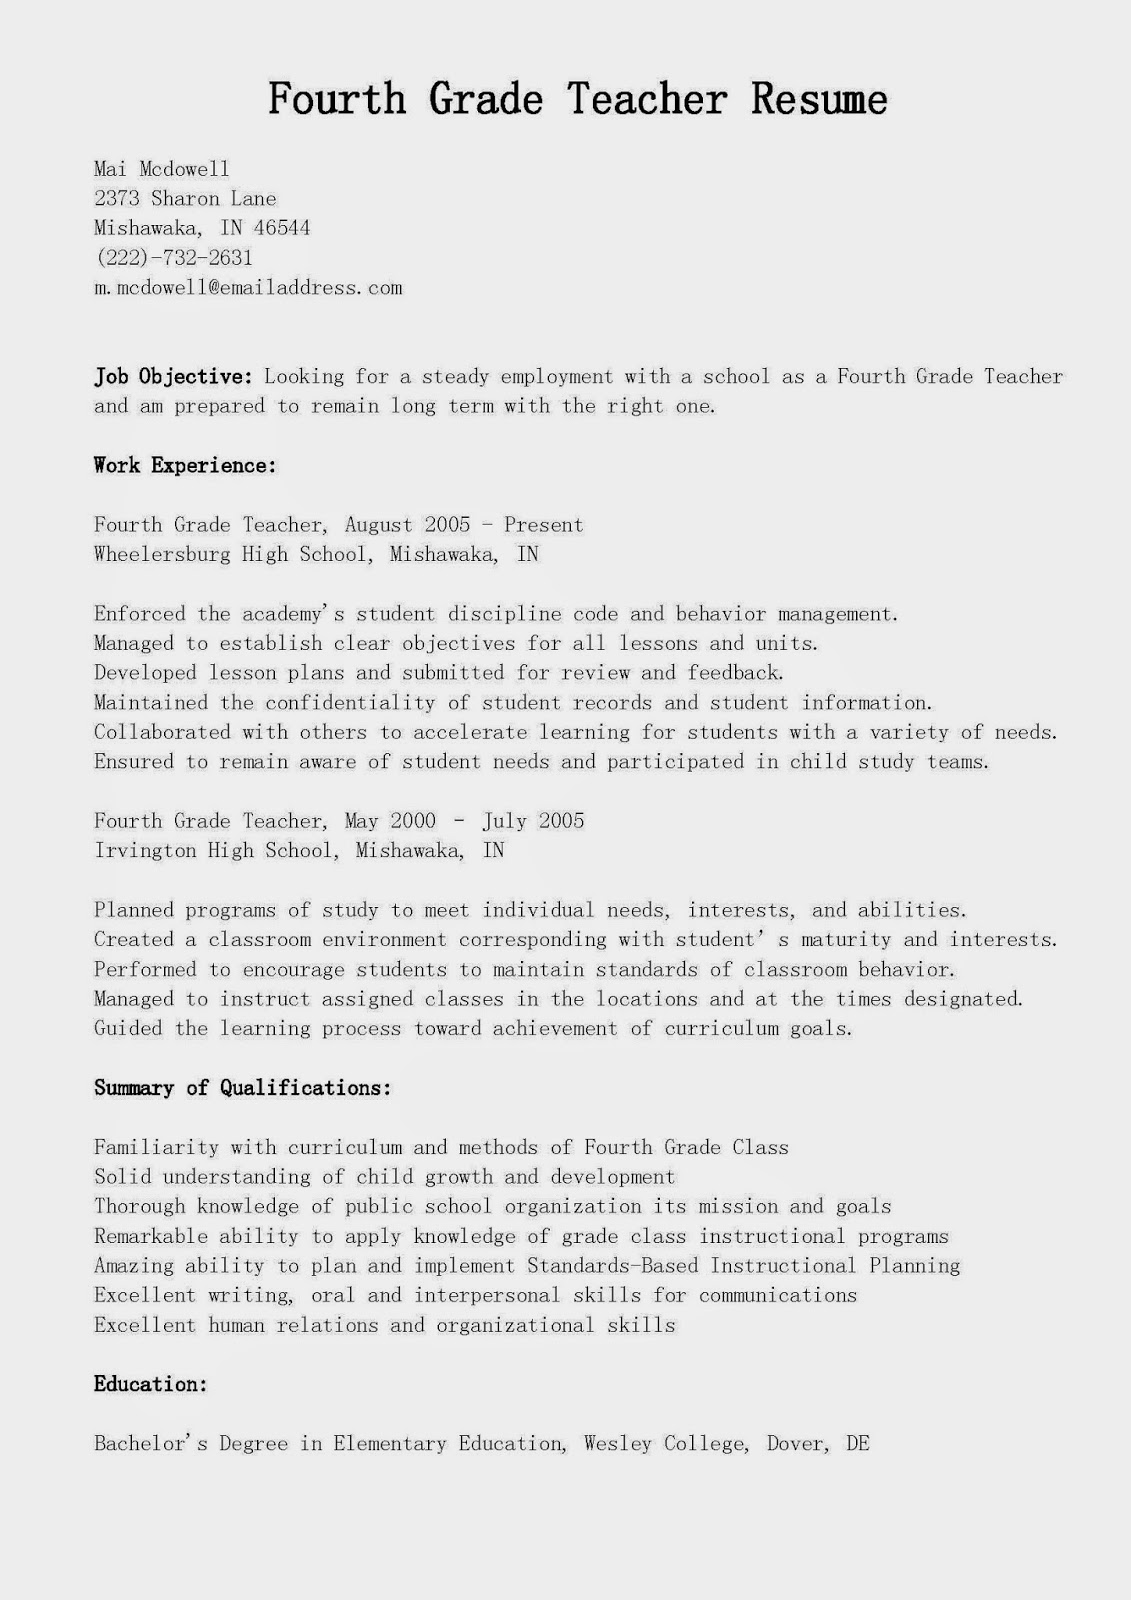 Resume Samples Fourth Grade Teacher Resume Sample